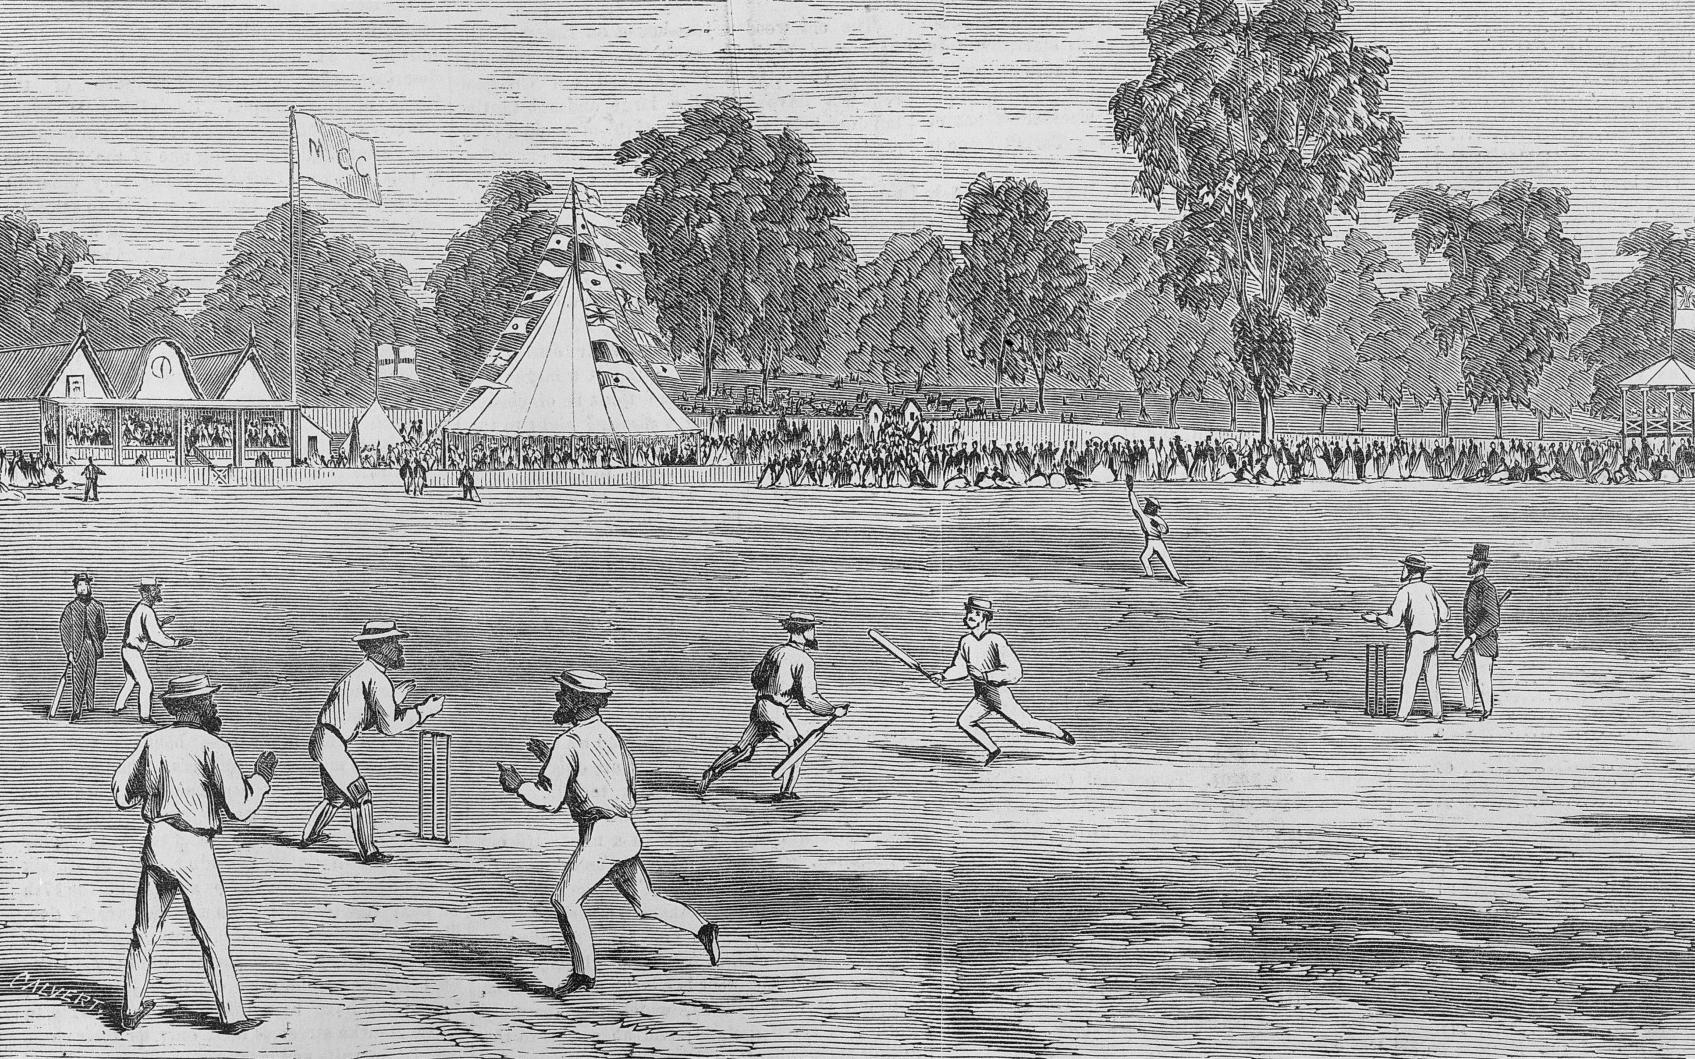 An Aboriginal cricket match, Melbourne, 24 January 1867.